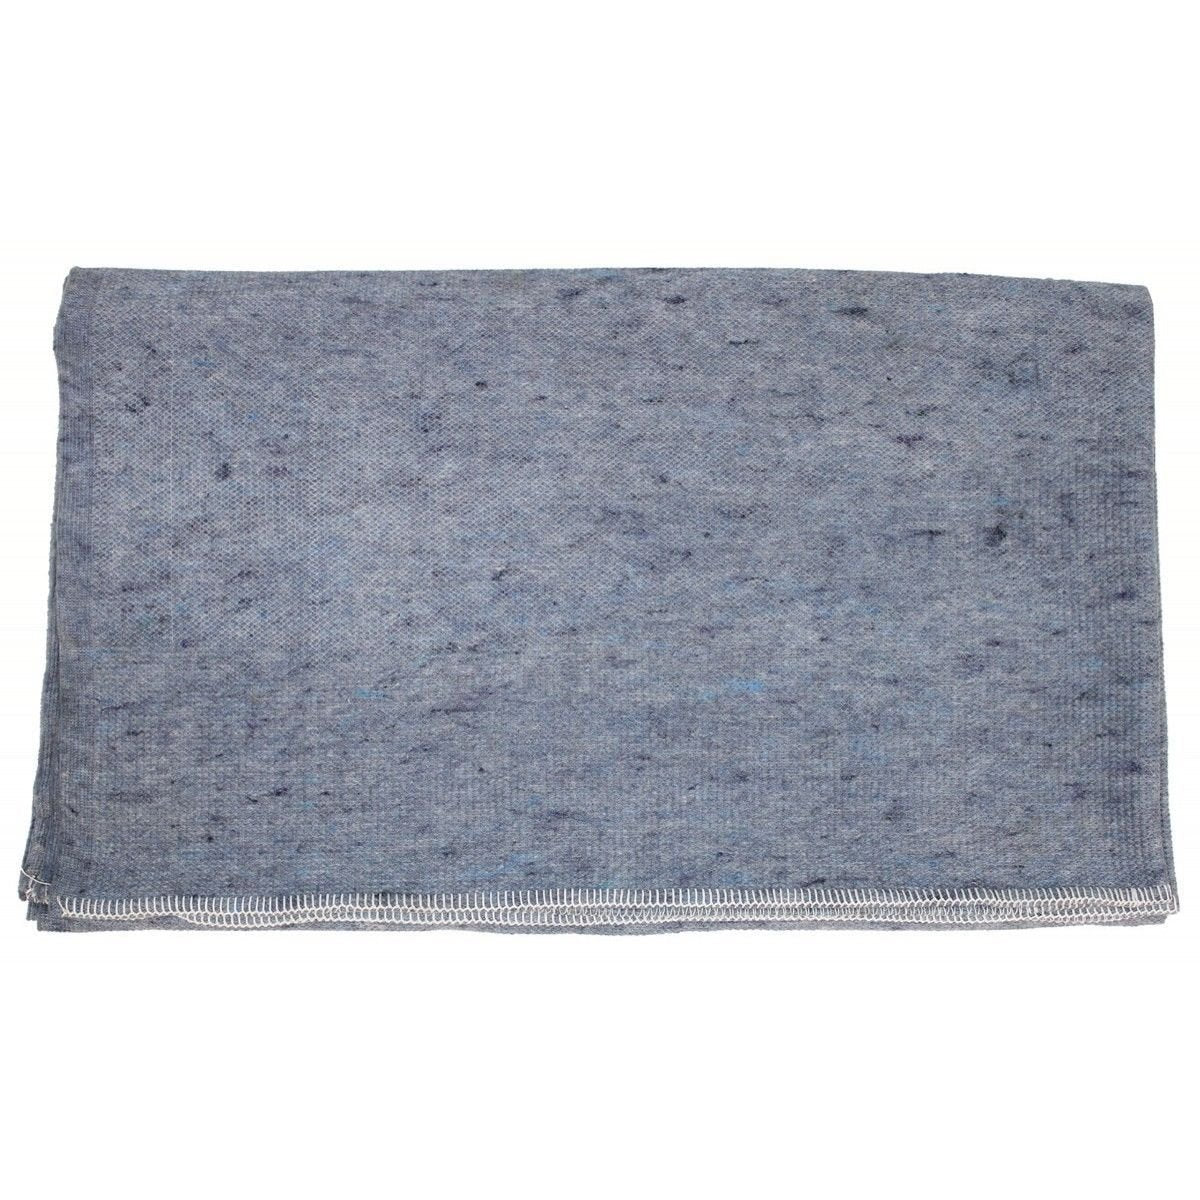 Danish army surplus blanket with stitched edges, grey blue colour